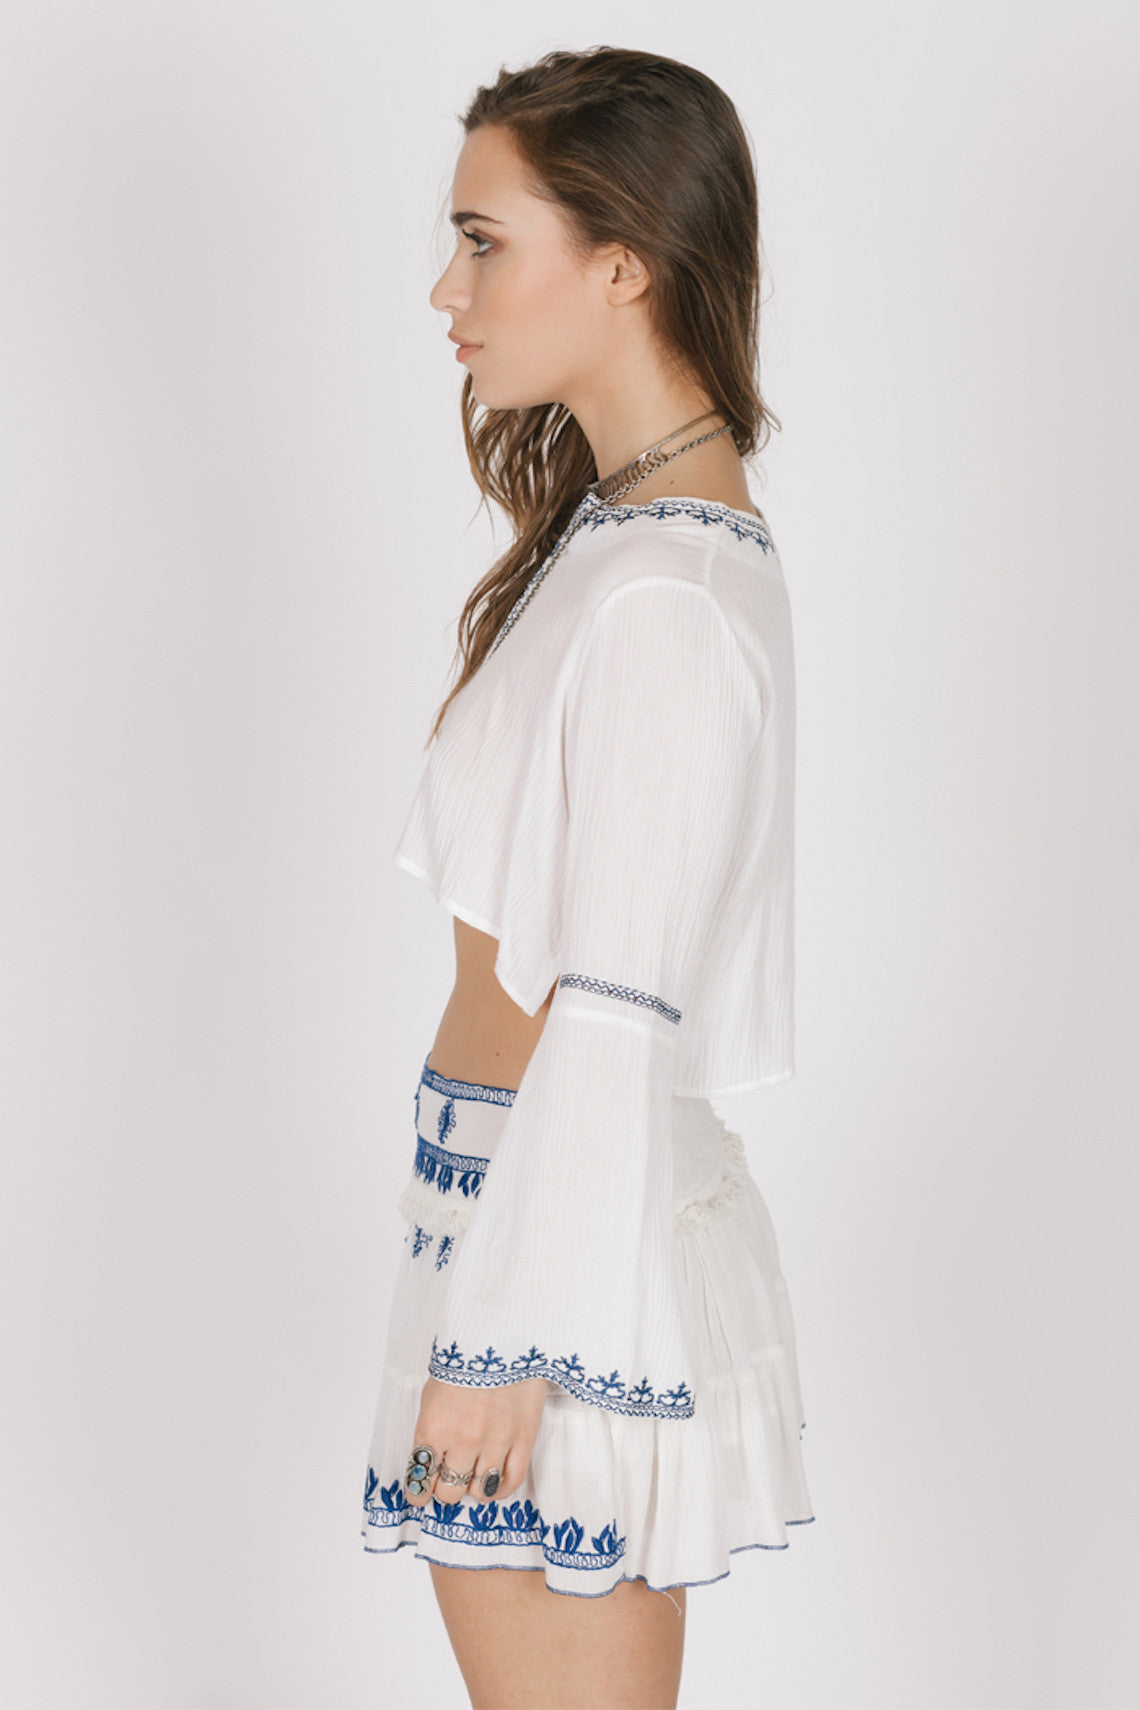 Santorini Mini Skirt-Women - Apparel - Shirts - Tunics-XS-Keyomi-Sook